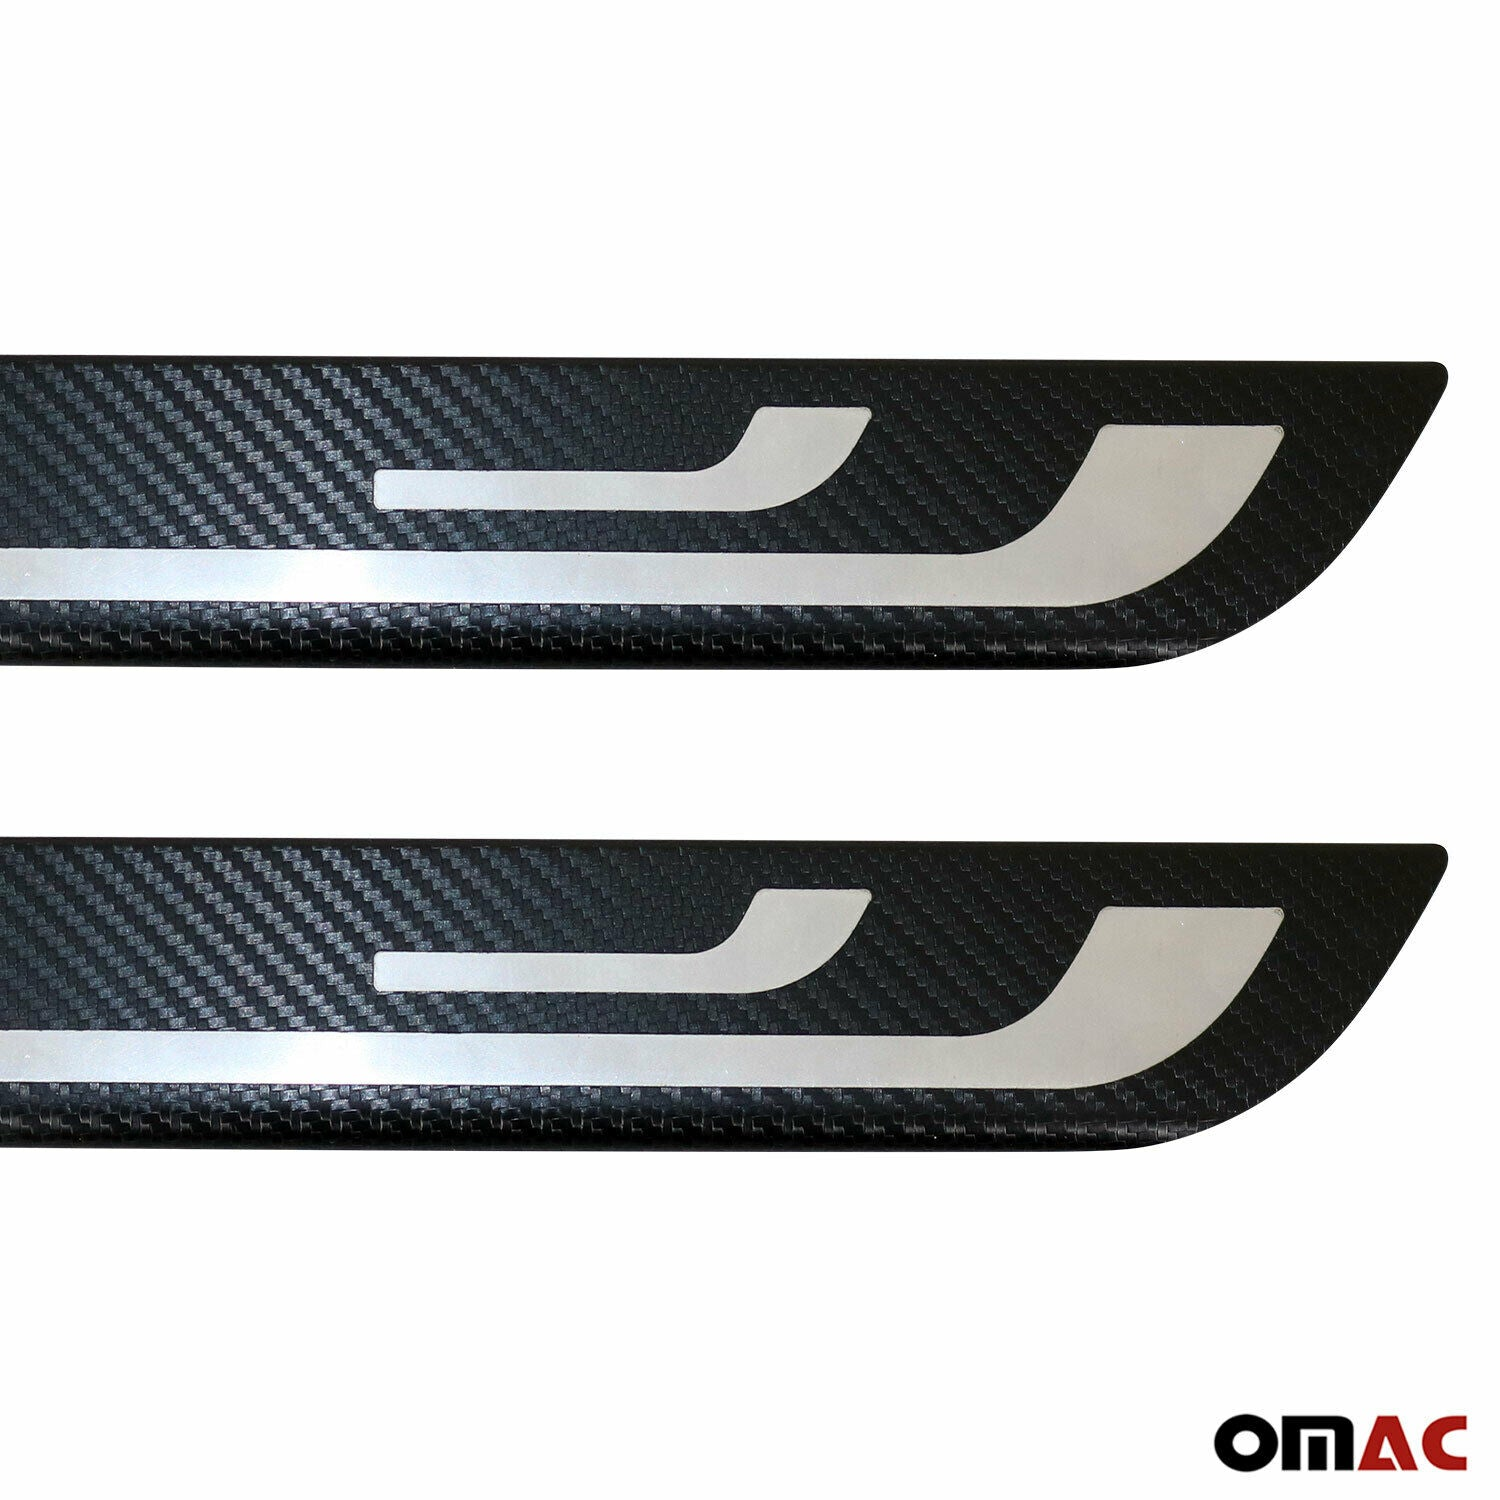 Carbon Foiled Door Sill Scuff Plate Guard Trim for Alfa Romeo Mito 2008-2018